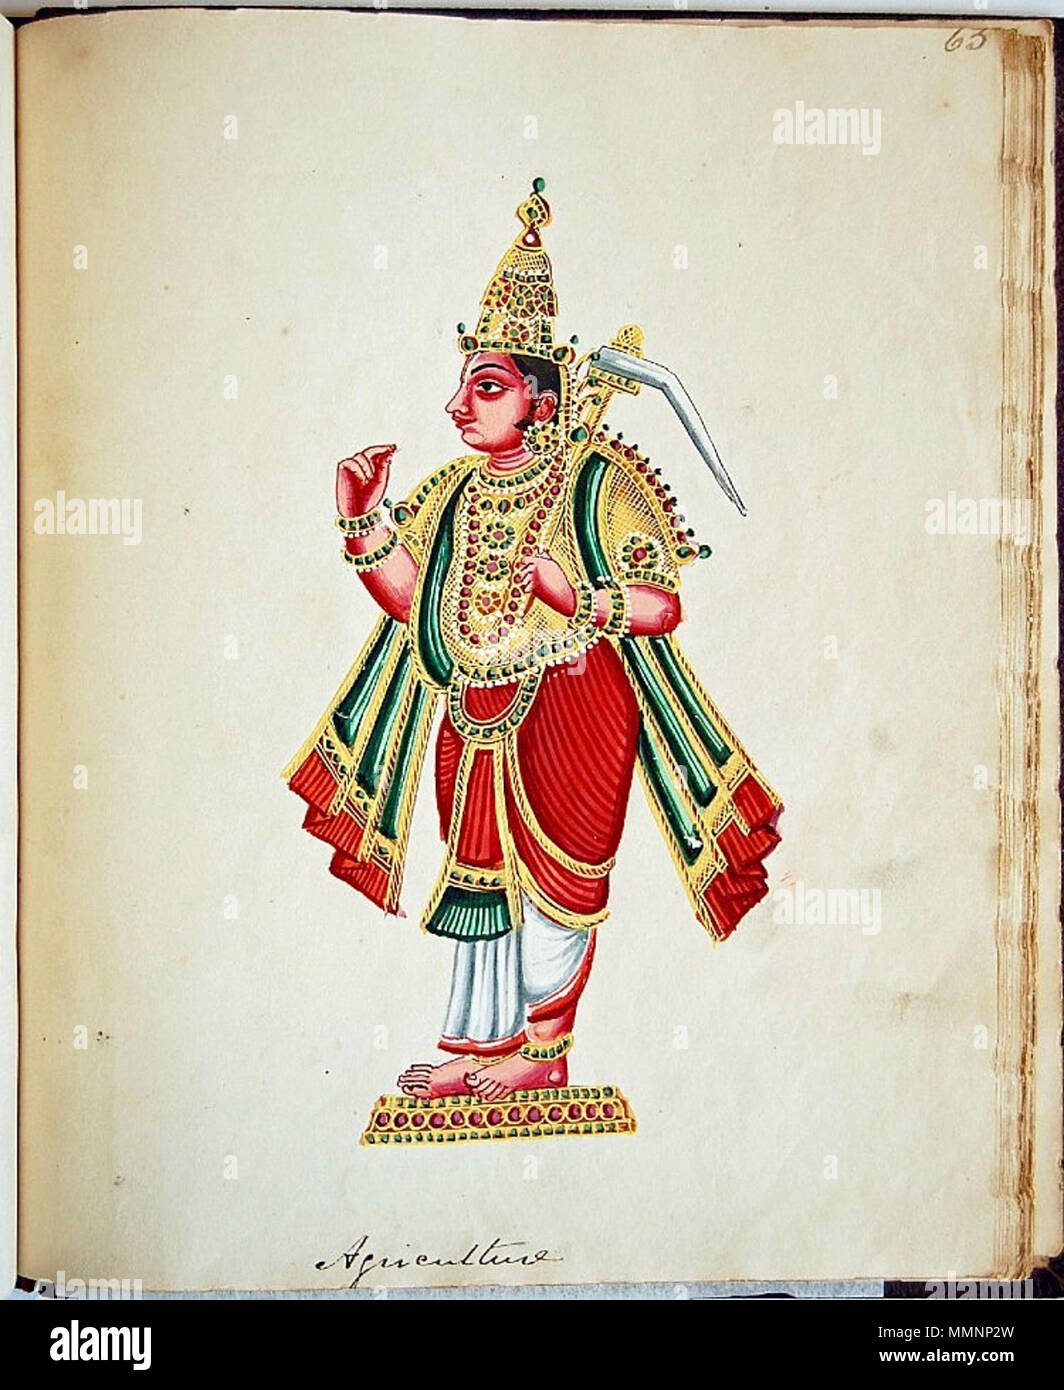 . English: Gouache painting on paper, part of an album of seventy paintings of Indian deities. Balarāma standing in profile on a low pedestal, carrying the hala (ploughshare), in his left hand. His right hand is empty. He wears a jewelled crown and kavacha (armour). Description Source   This is a faithful photographic reproduction of a two-dimensional, public domain work of art. The work of art itself is in the public domain for the following reason:  Public domainPublic domainfalsefalse    This work is in the public domain in its country of origin and other countries and areas where the copyr - Stock Image